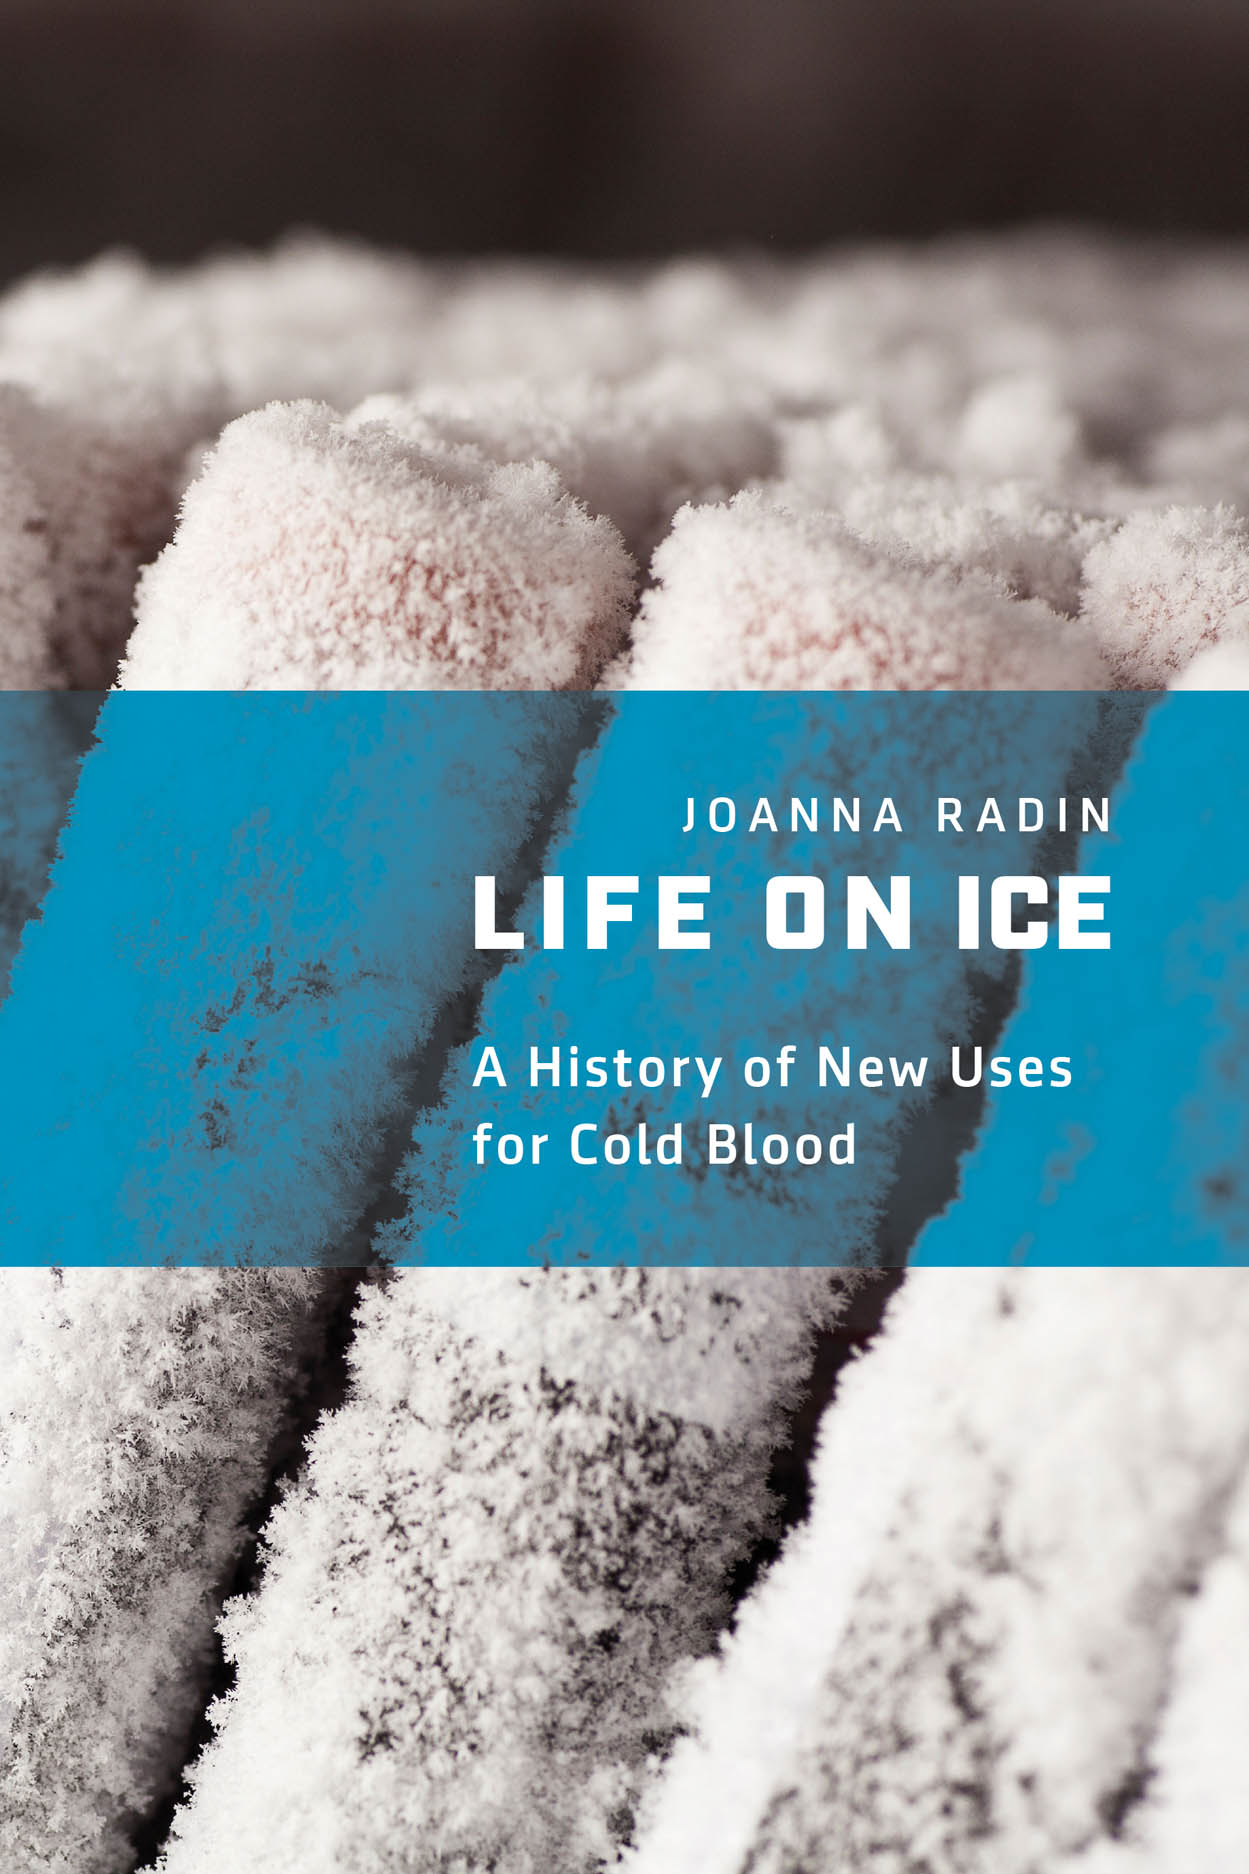 Book cover of Life On Ice: A History of New Uses for Cold Blood